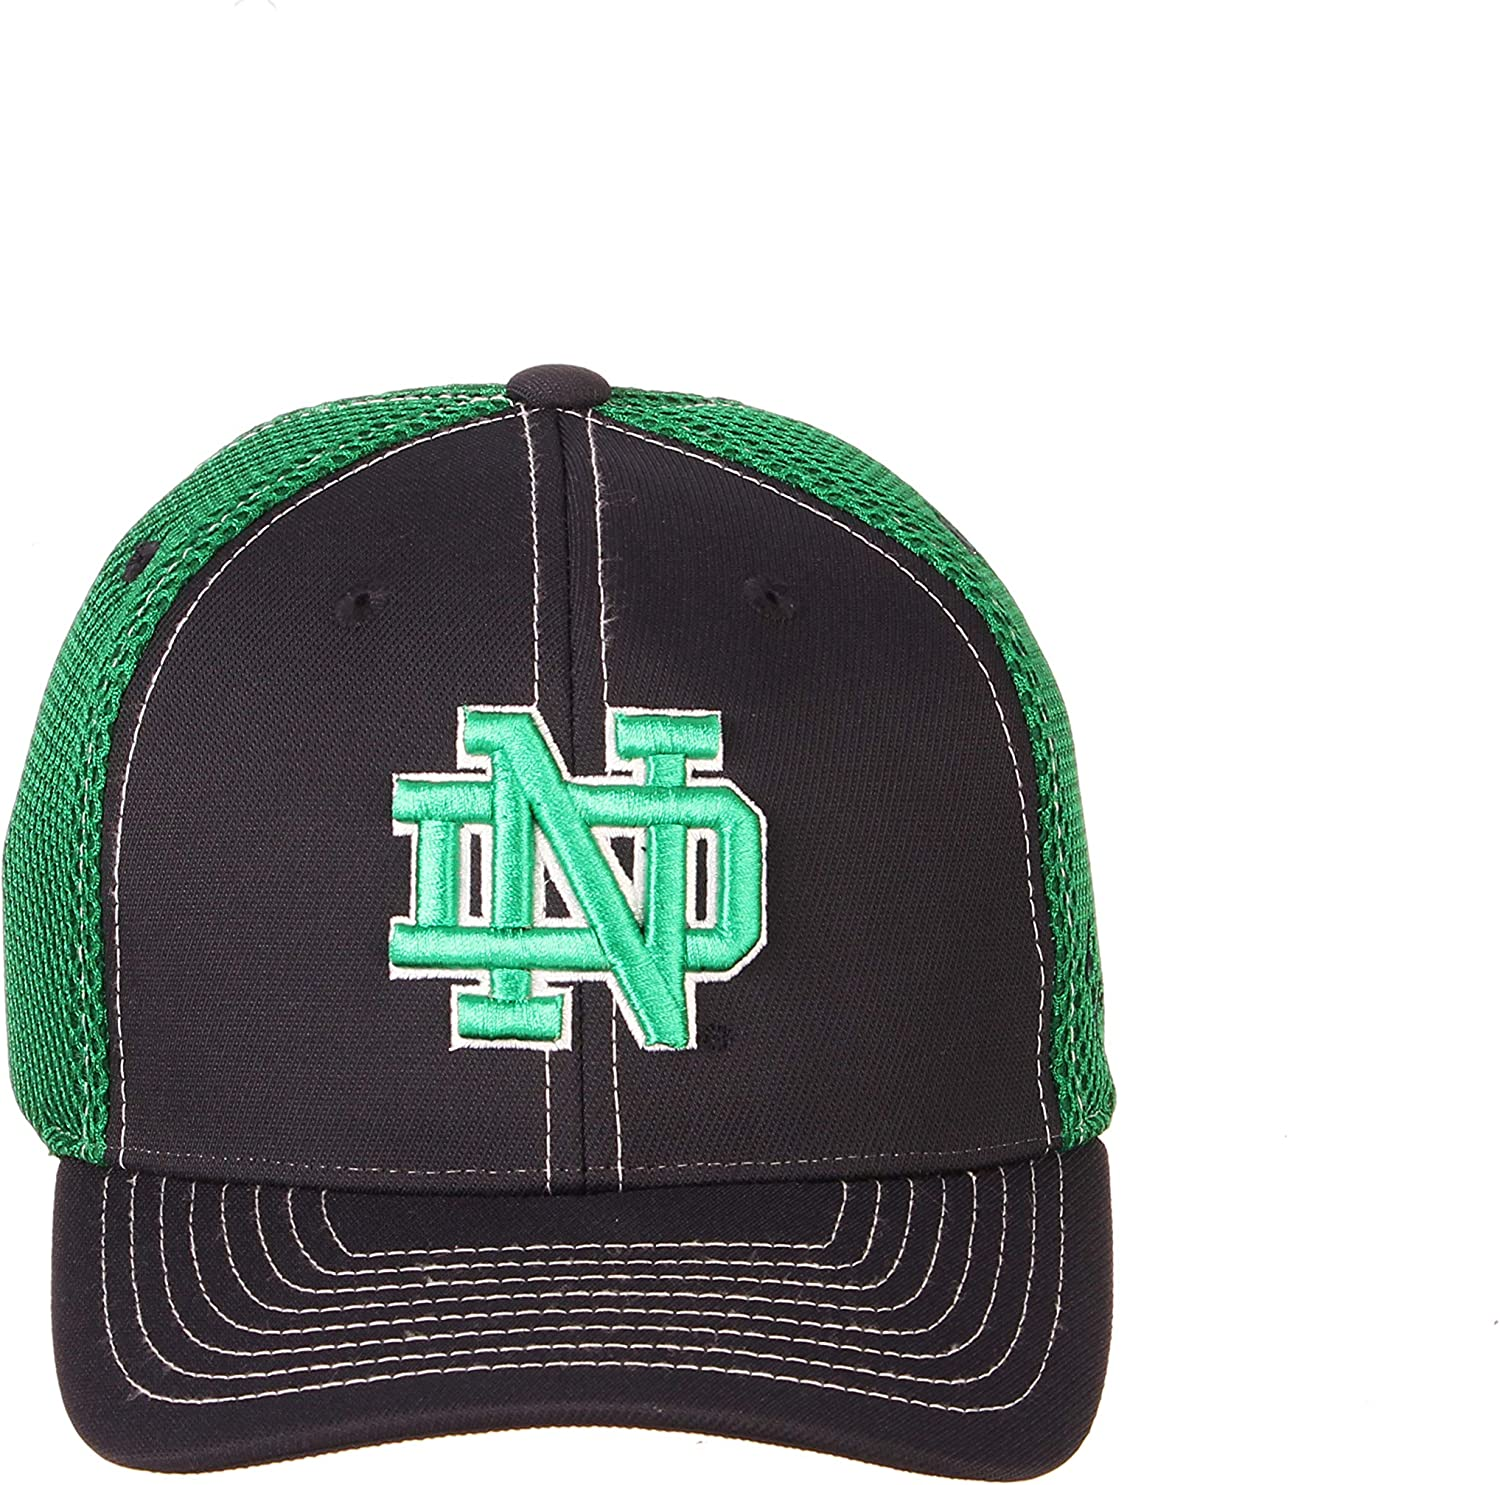 Youth Adjustable NCAA Zephyr Notre Dame Fighting Irish Youth Chute Adjustable Hat Team Color